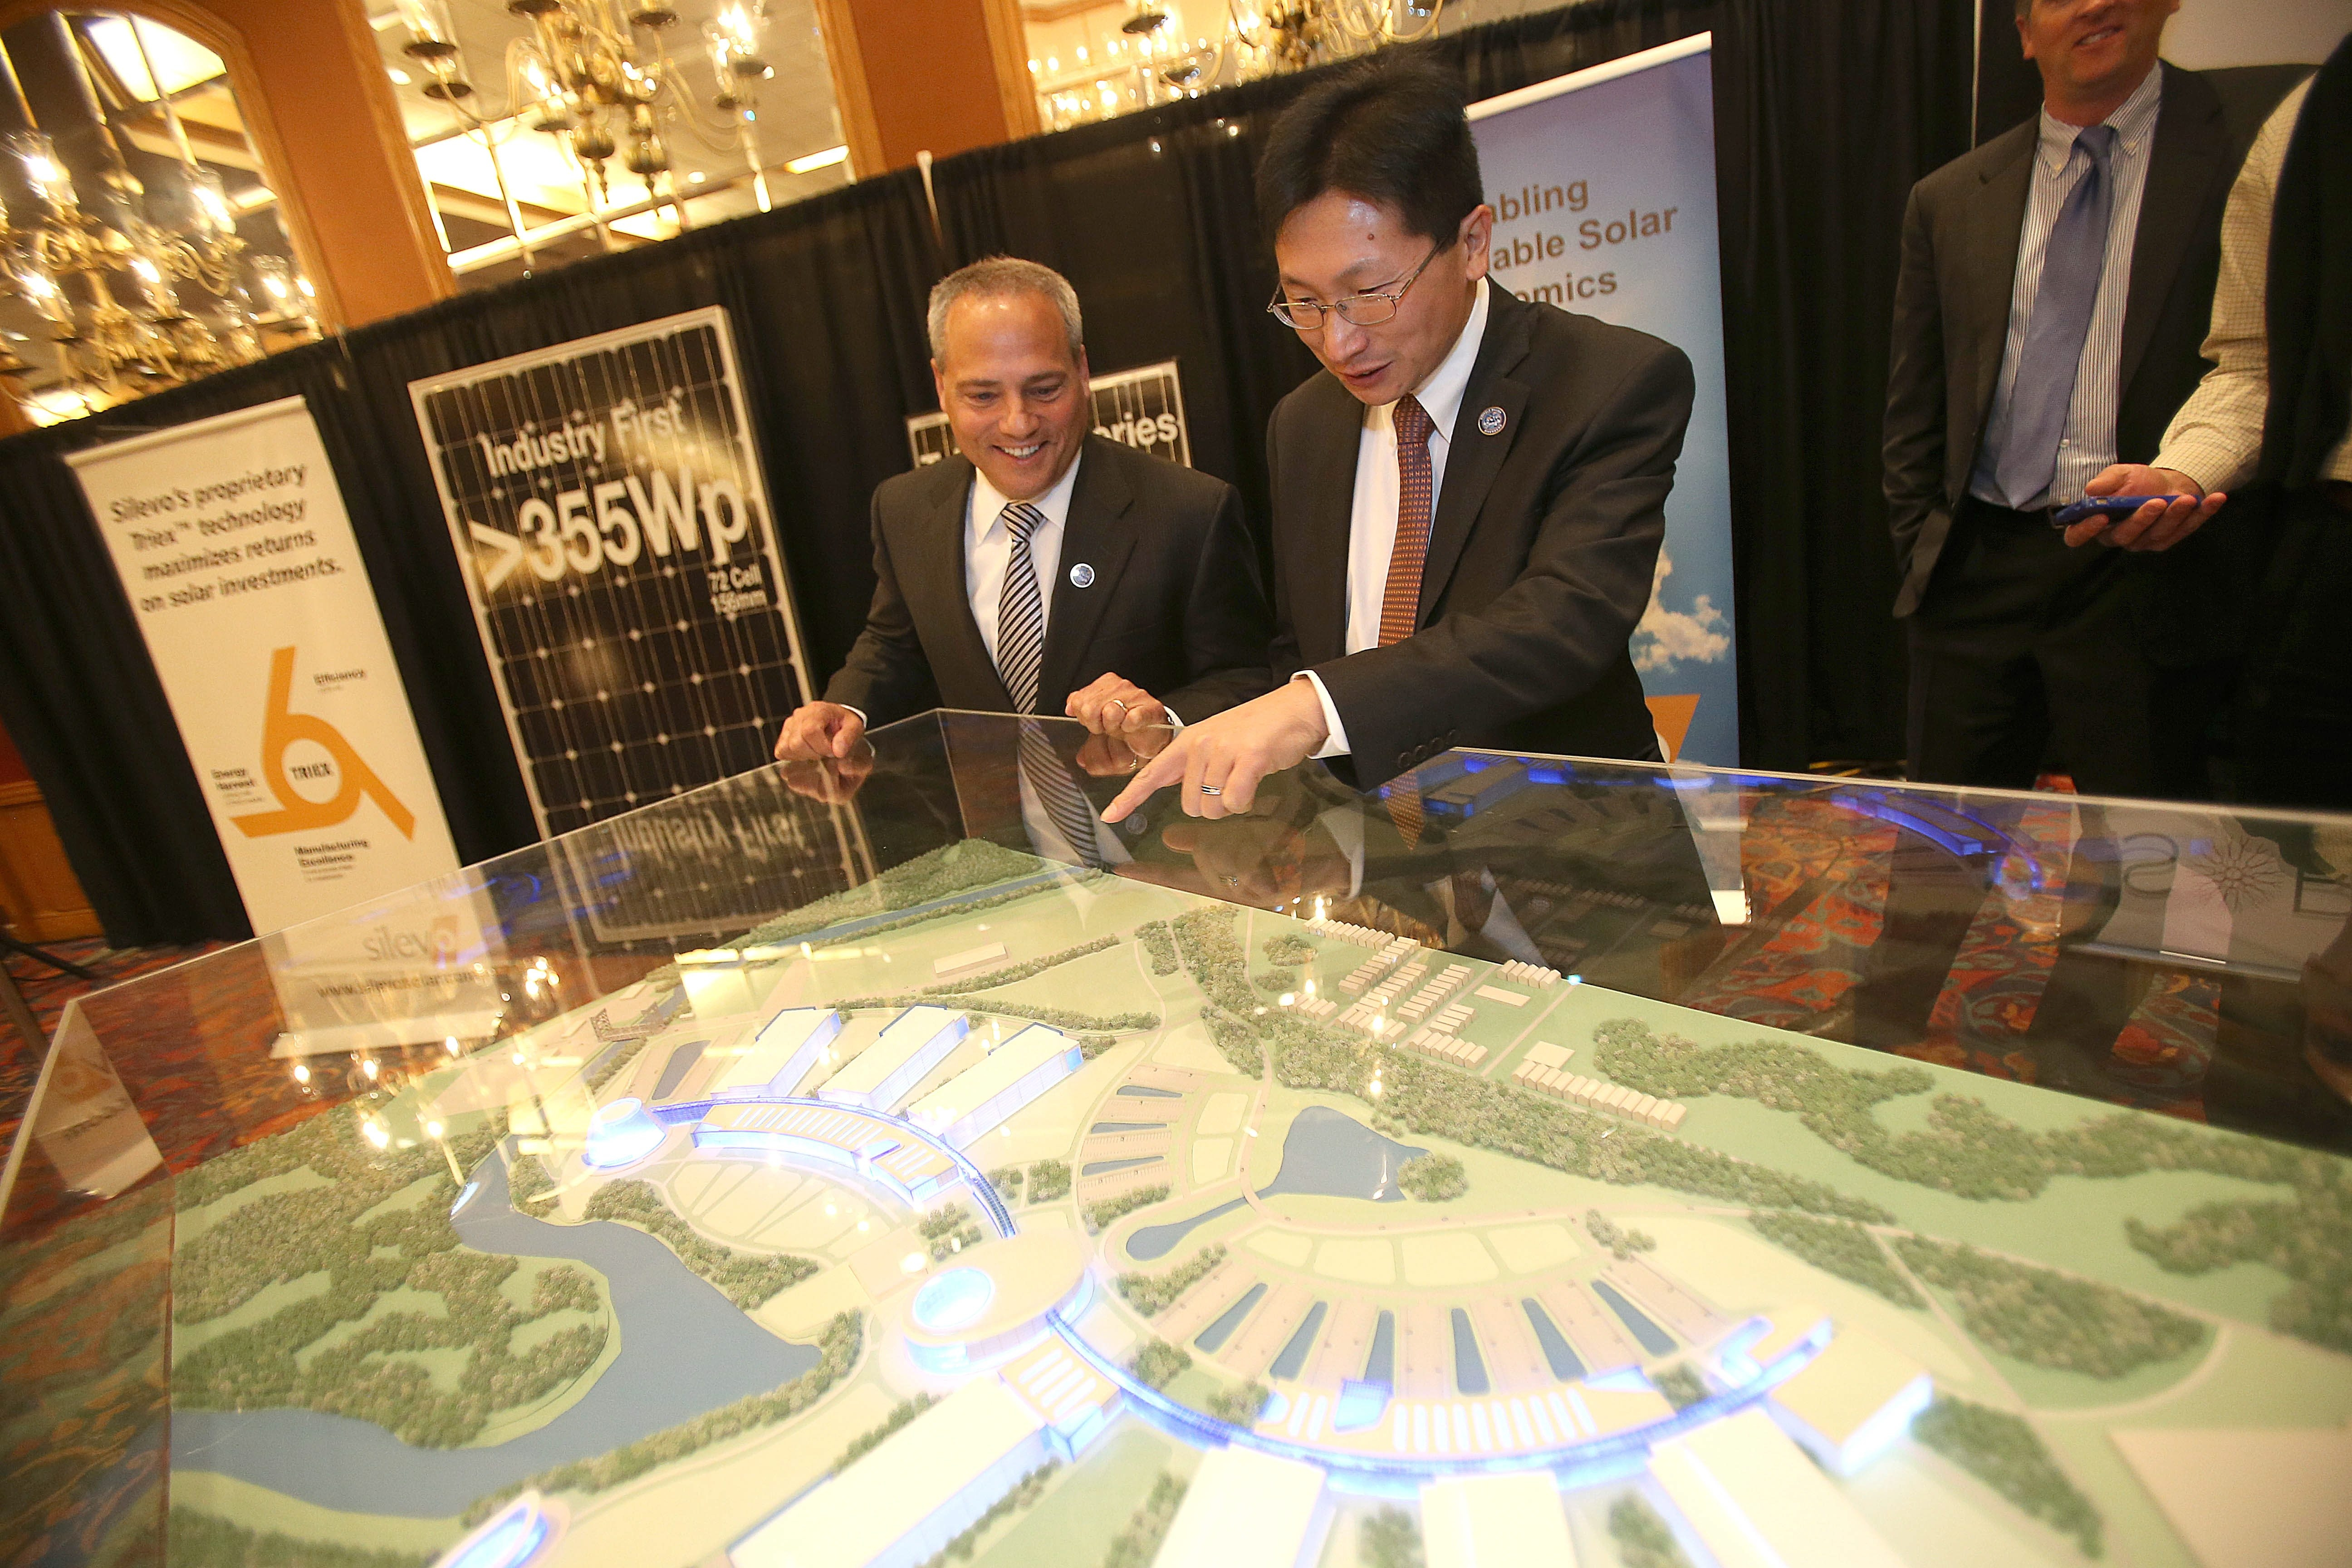 Dr.  Caulfield, president and COO of Soraa, left, and Dr. Zheng Xu, CEO of Silevo look at the 3D model of the river bend project after the announcement today at Adam's Mark Hotel today on Thursday, Nov. 21, 2013.  (Robert Kirkham/Buffalo News)